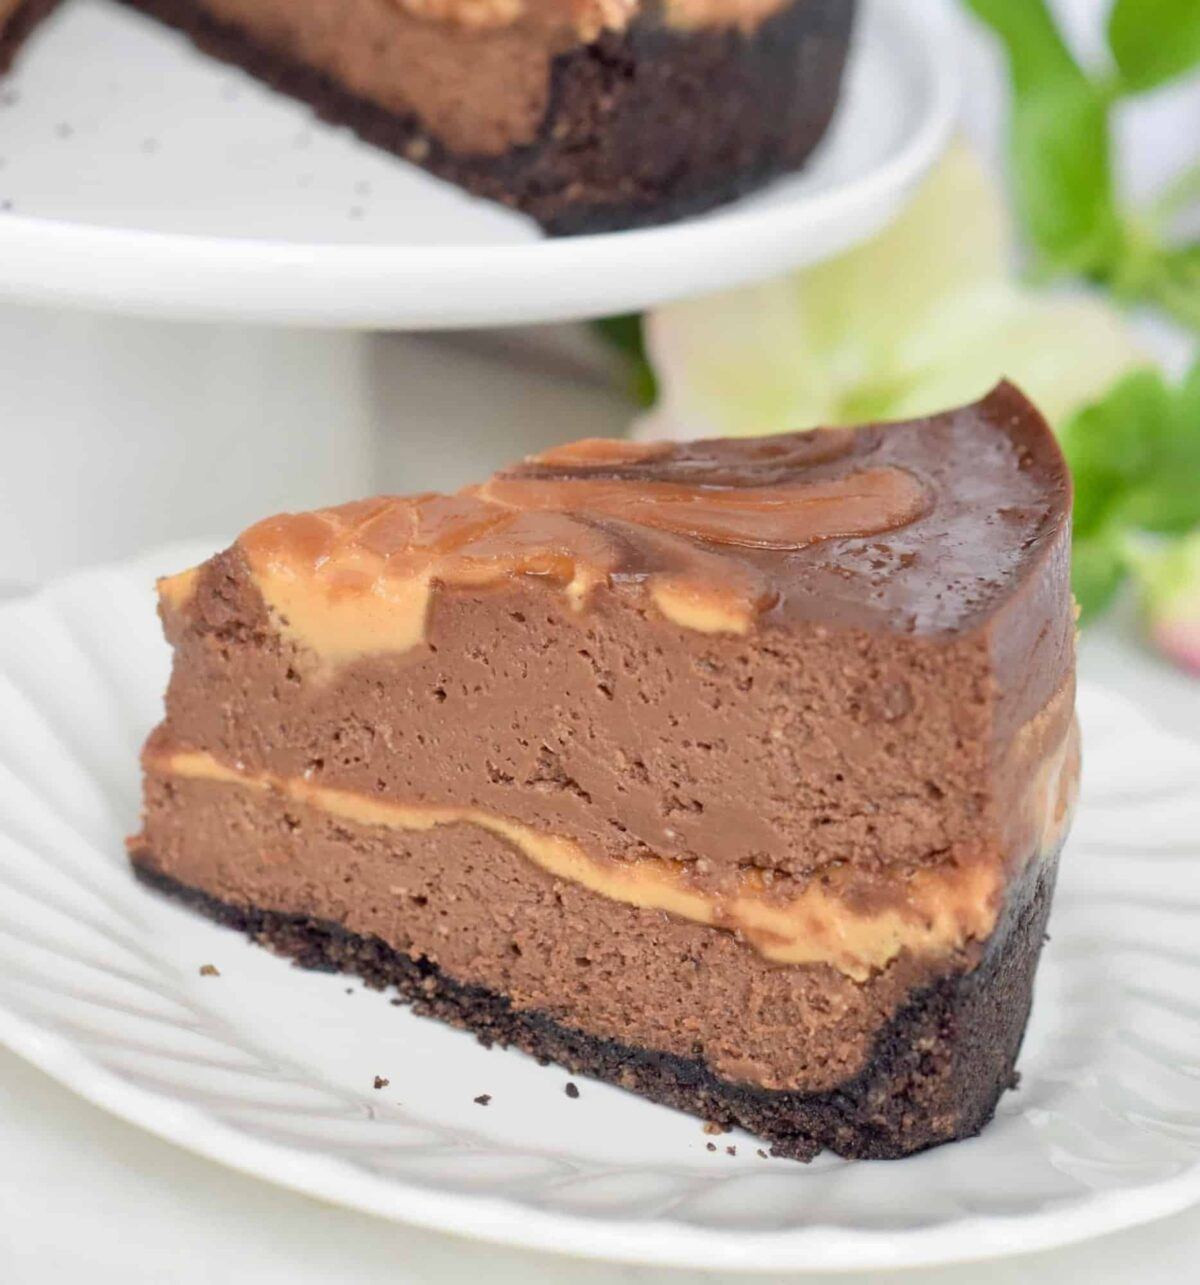 Chocolate-Peanut Butter Swirl Cheesecake slice. whole cheesecake behind it